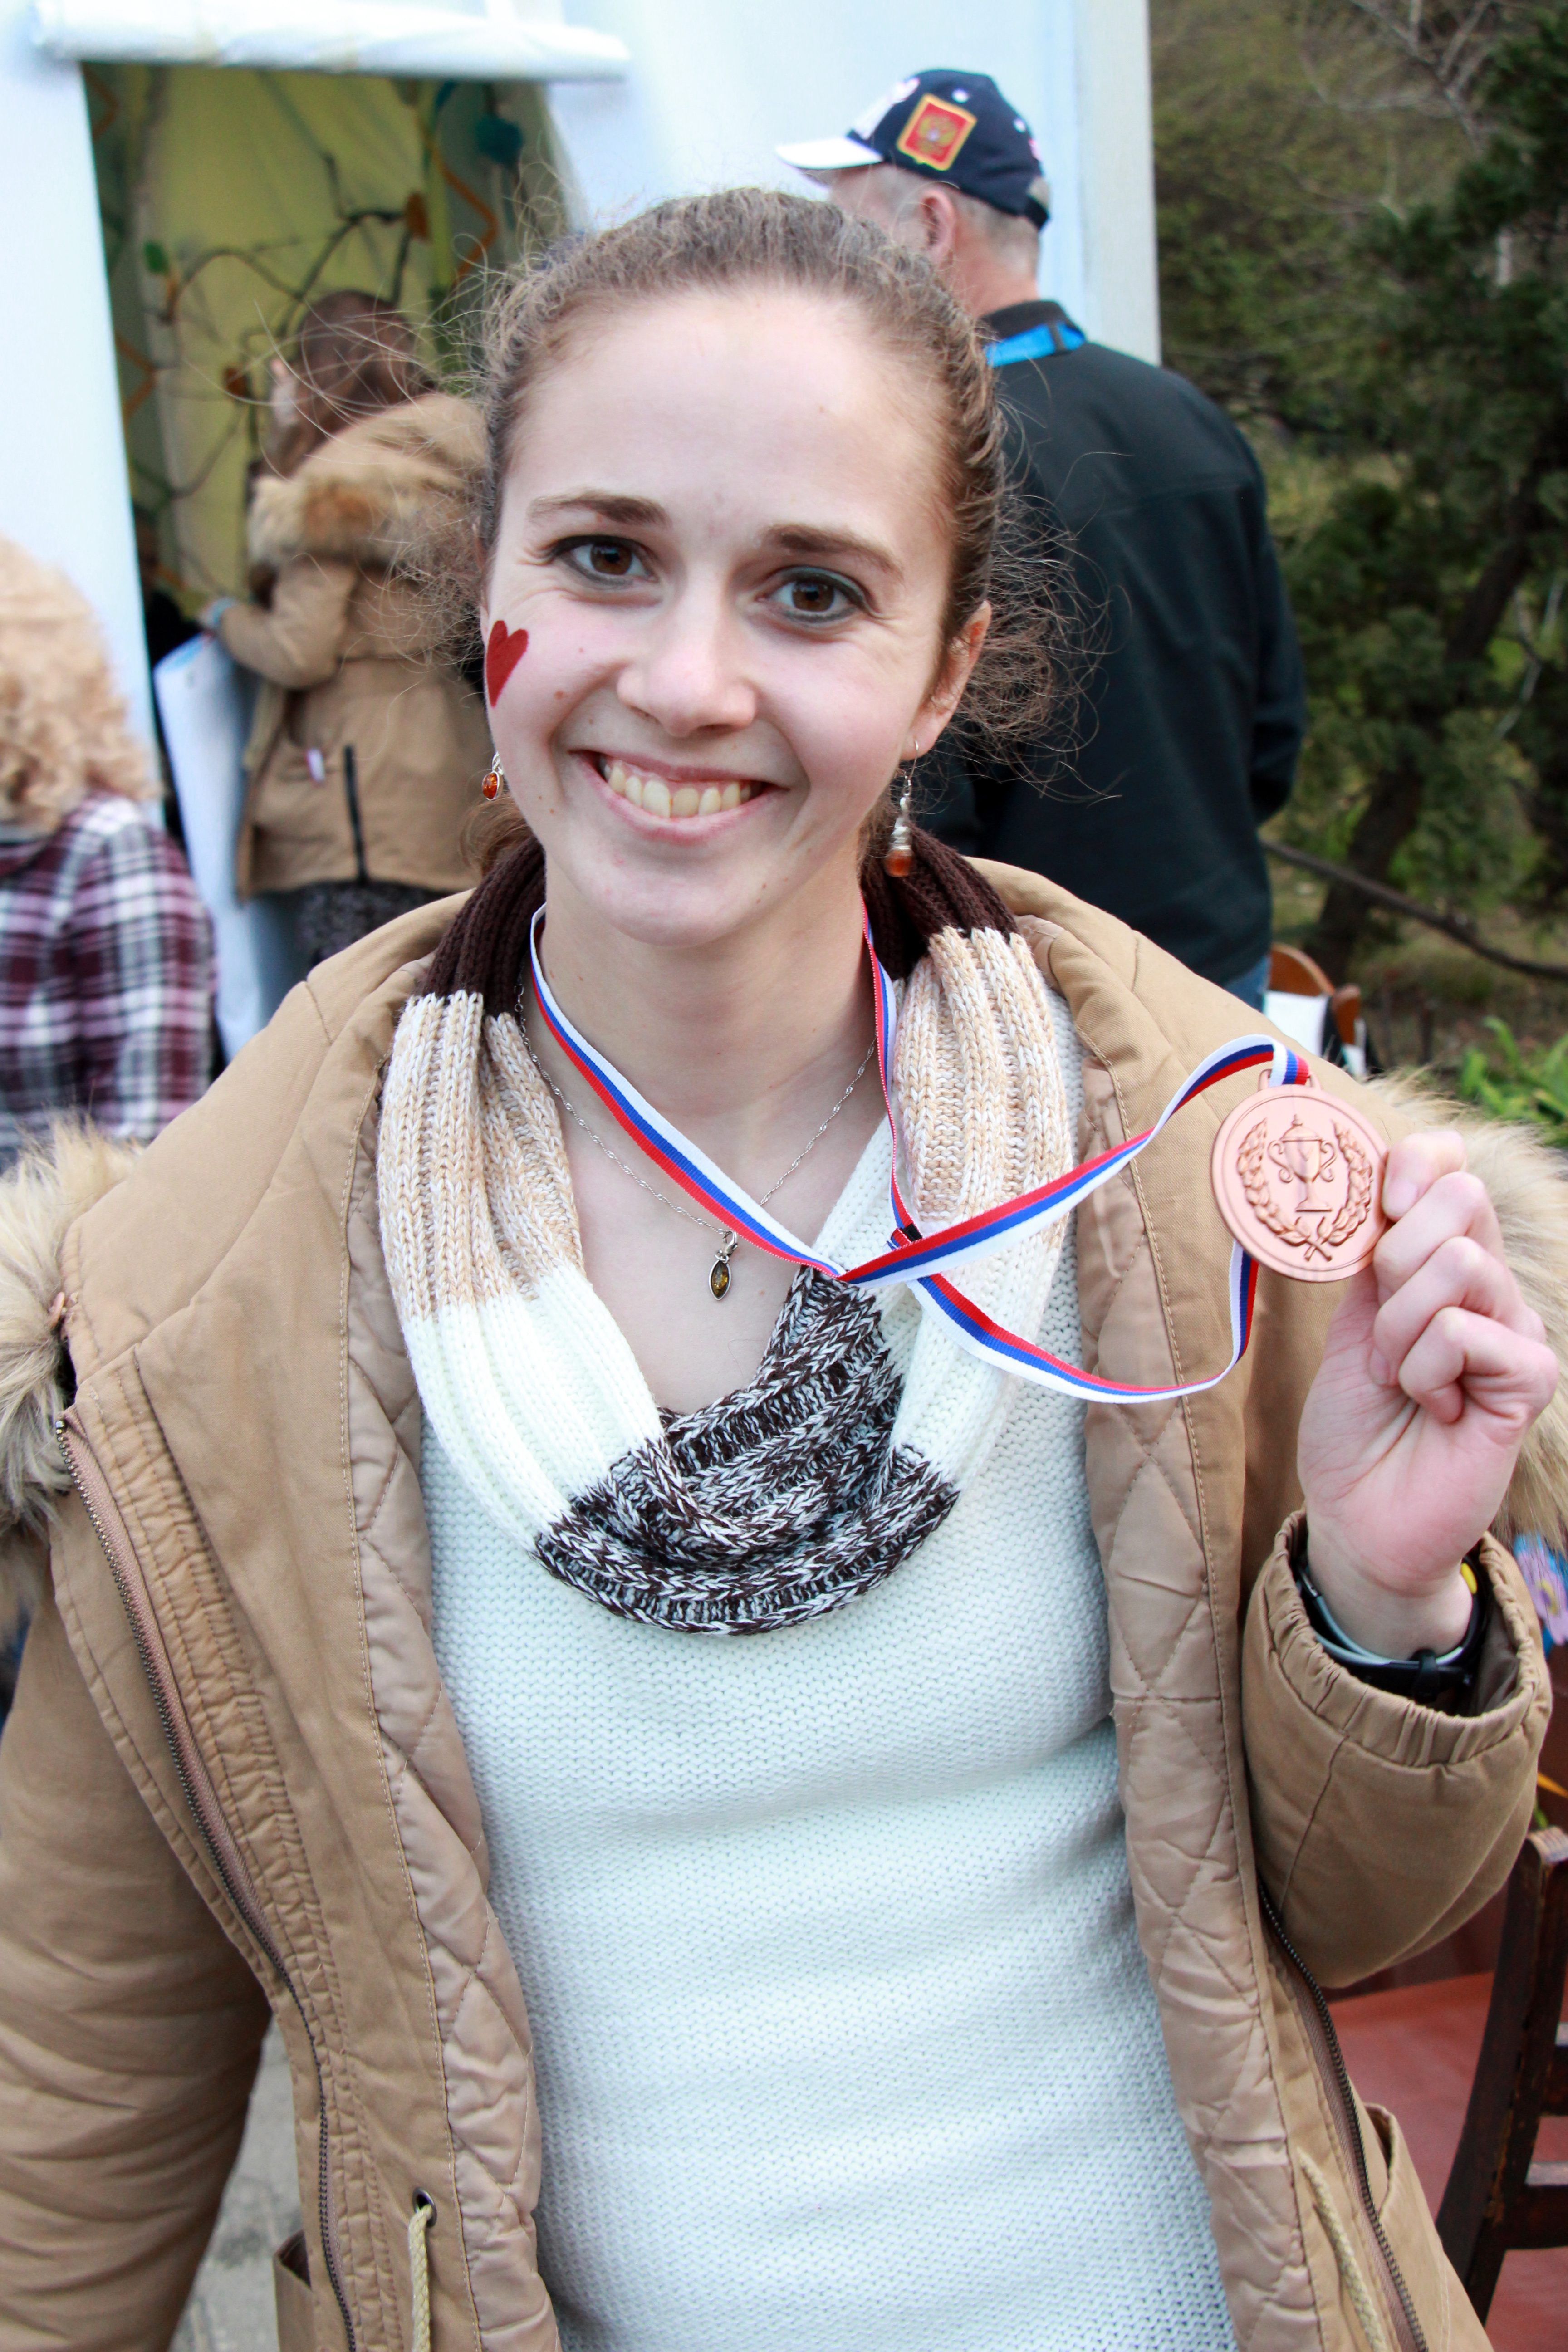 Ruth Mihalik wins bronze medal at Fun Zone competition in Sochi, Russia.